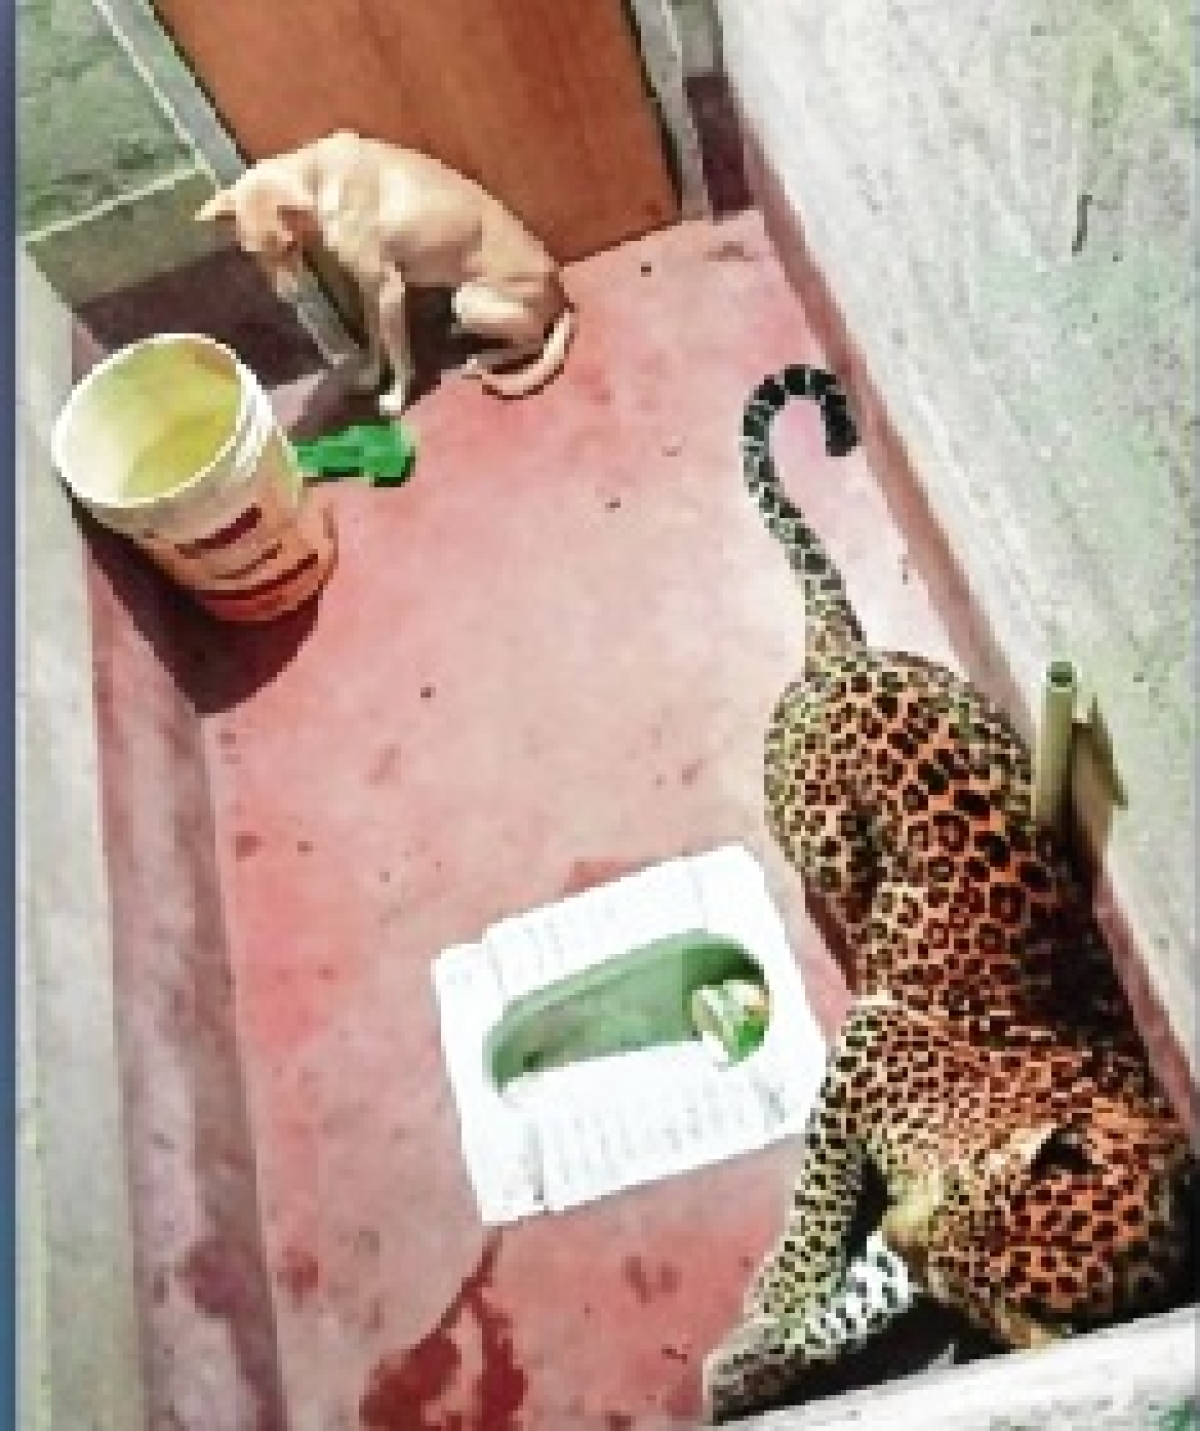 Tale of leopard & a dog in a toilet